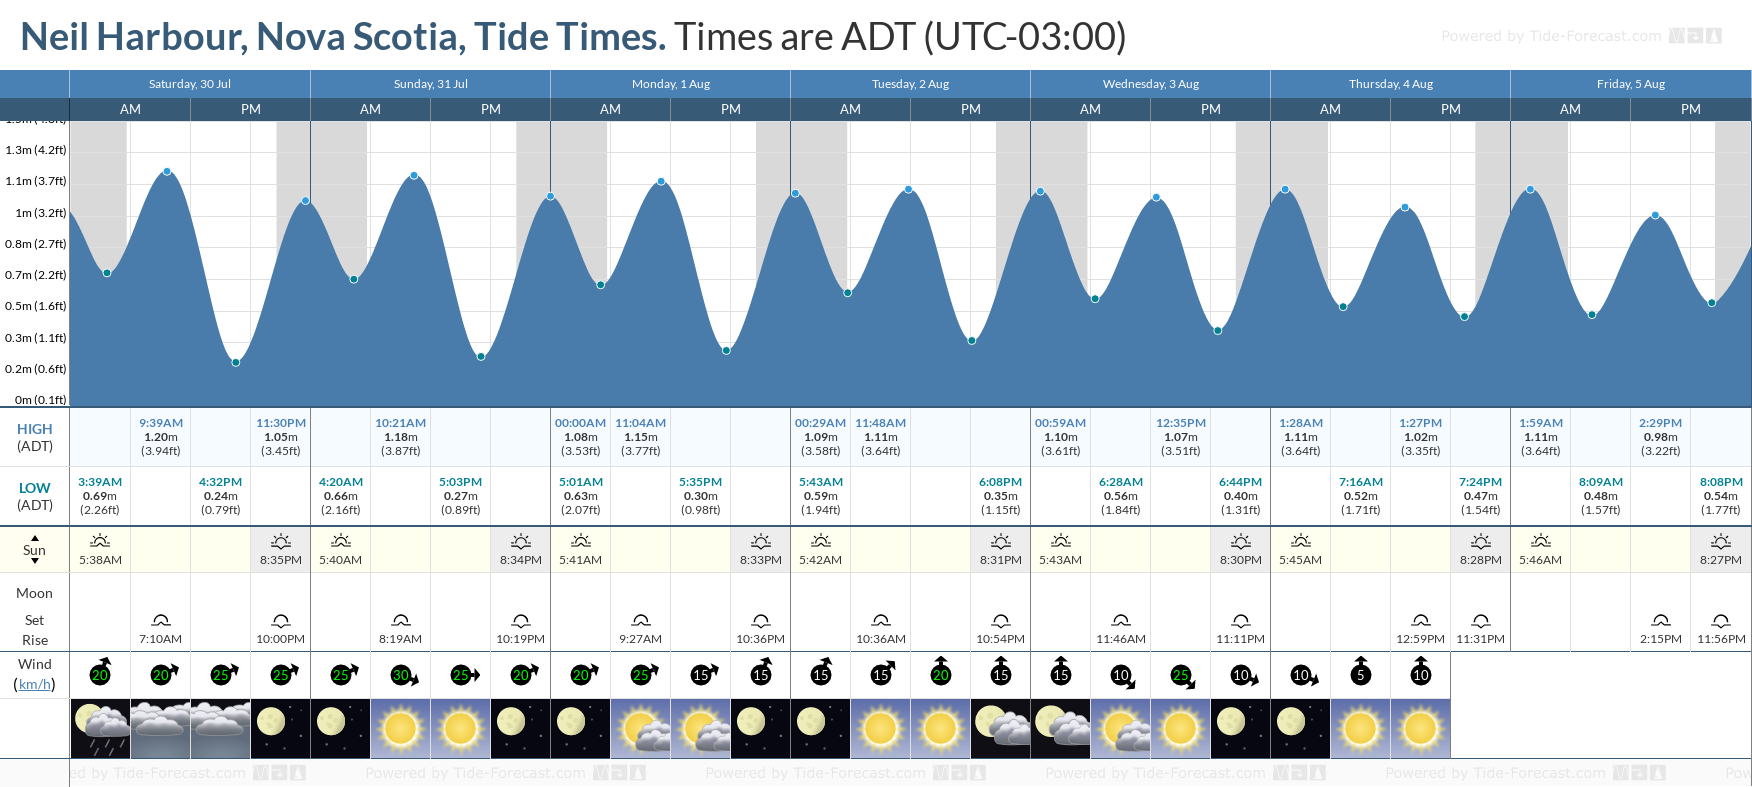 Neil Harbour, Nova Scotia Tide Chart including high and low tide tide times for the next 7 days